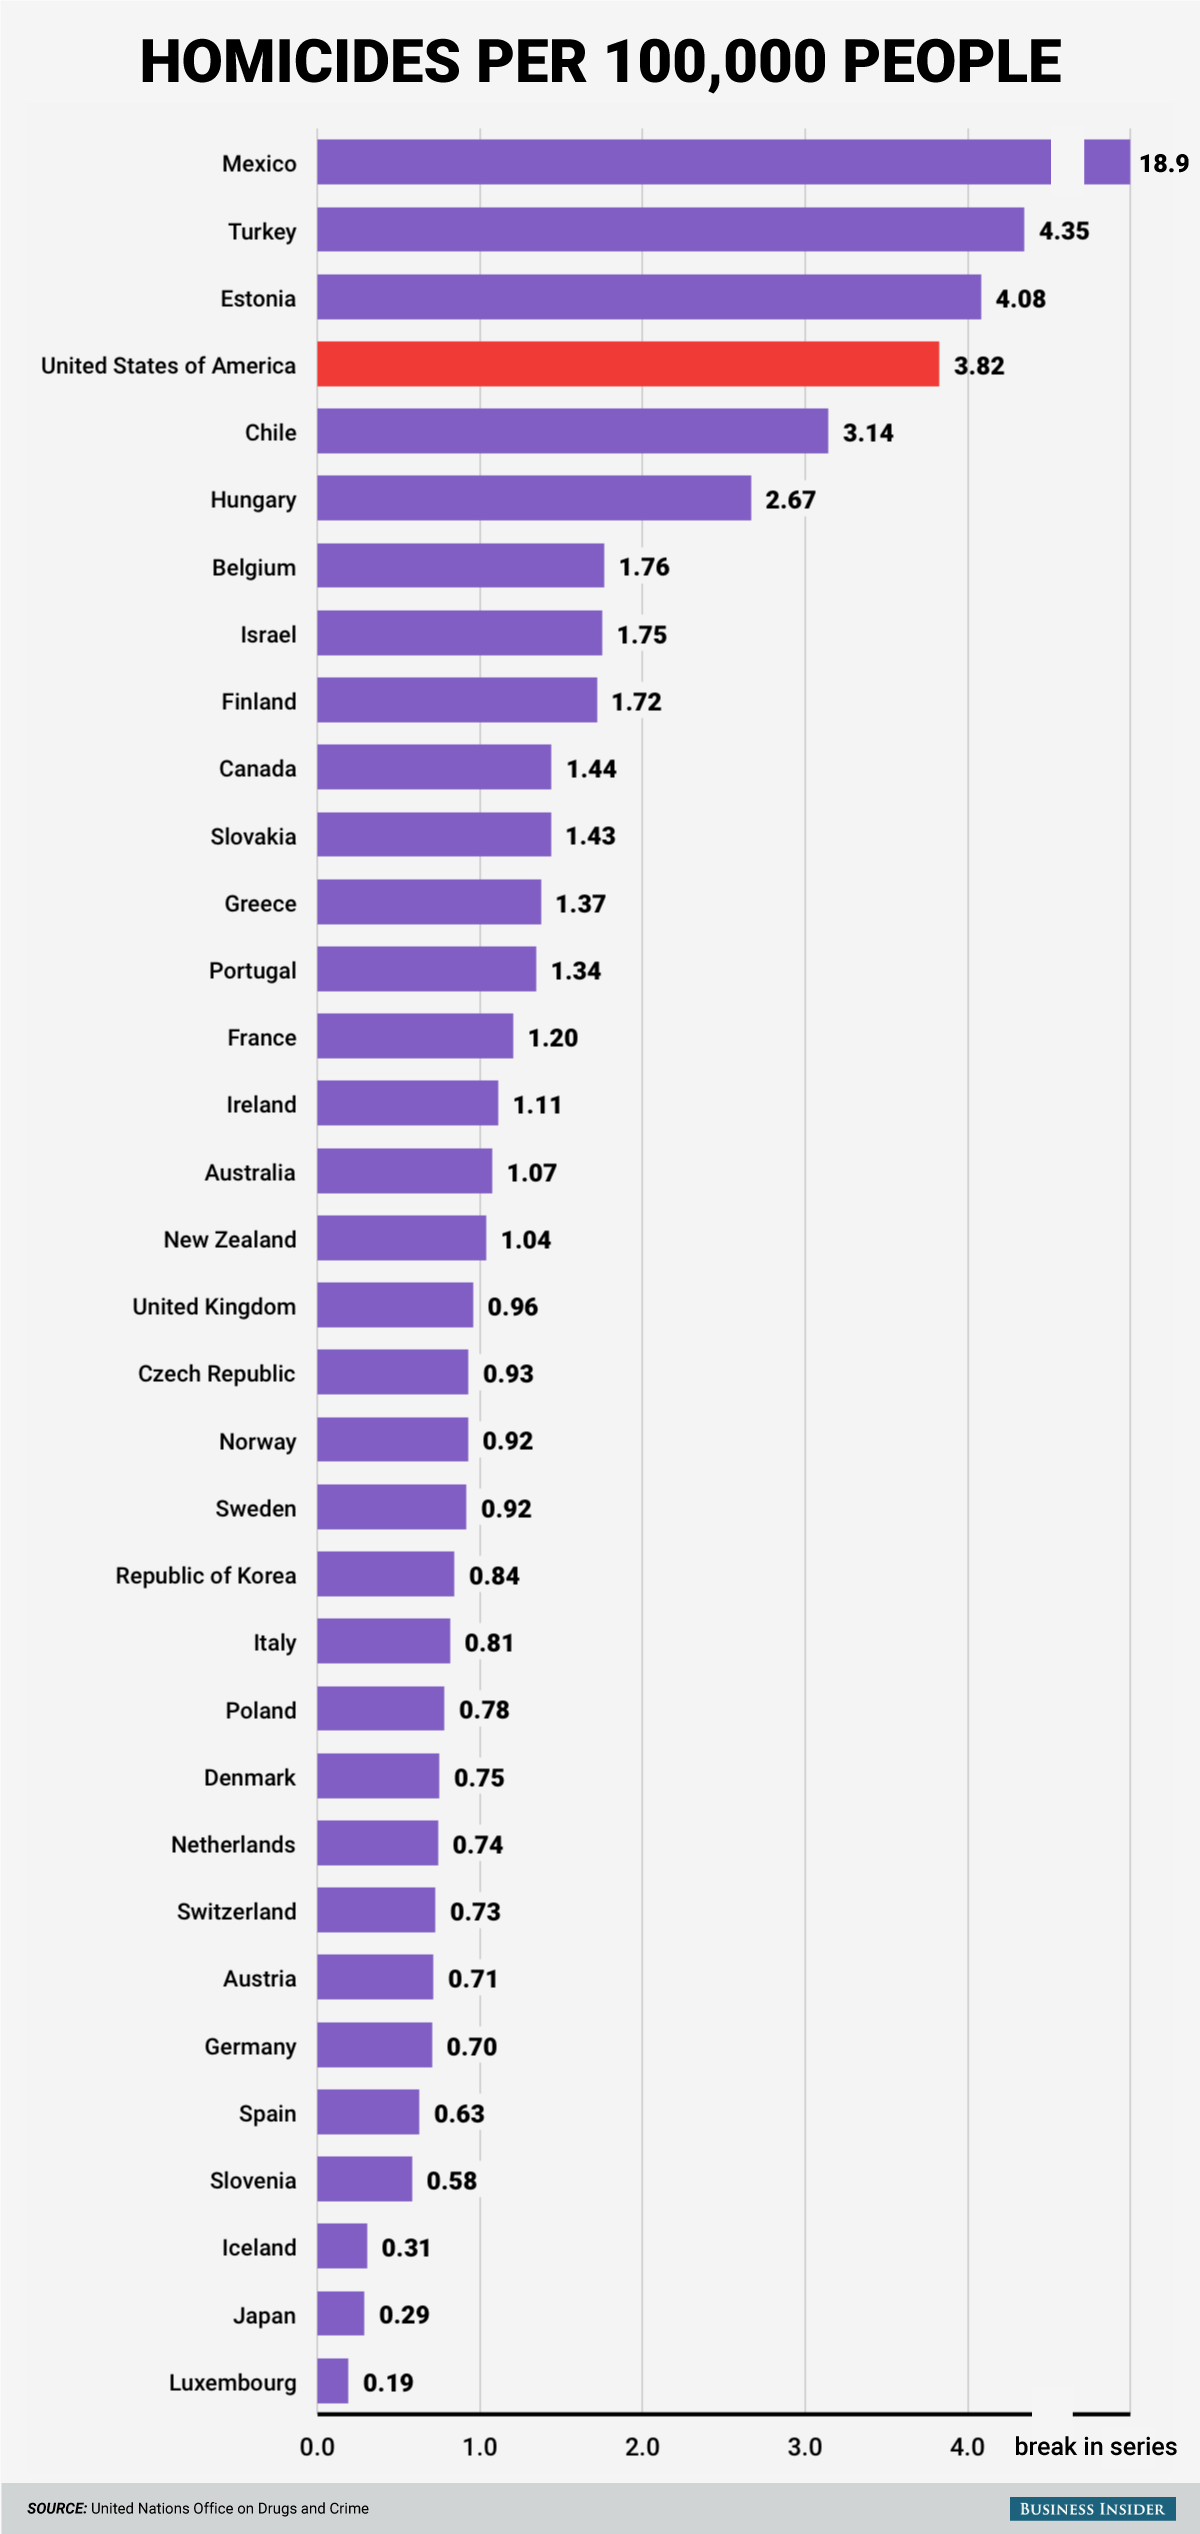 oecd-homicide-rates.png